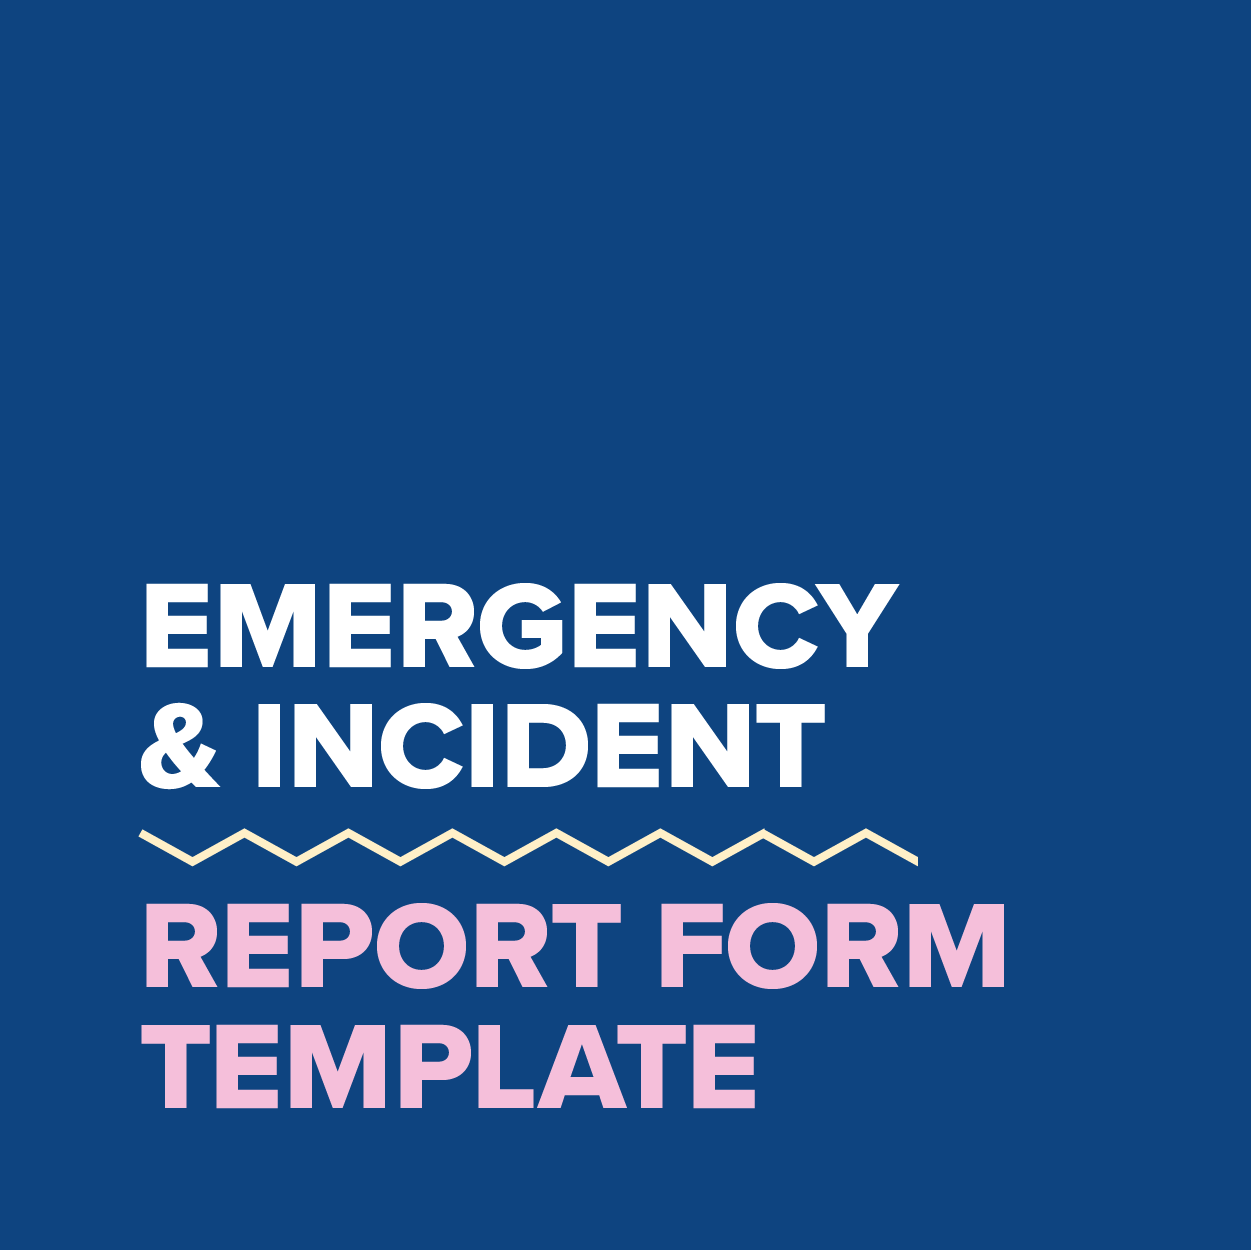 MDC2021_Template_Emergency & Incident Report